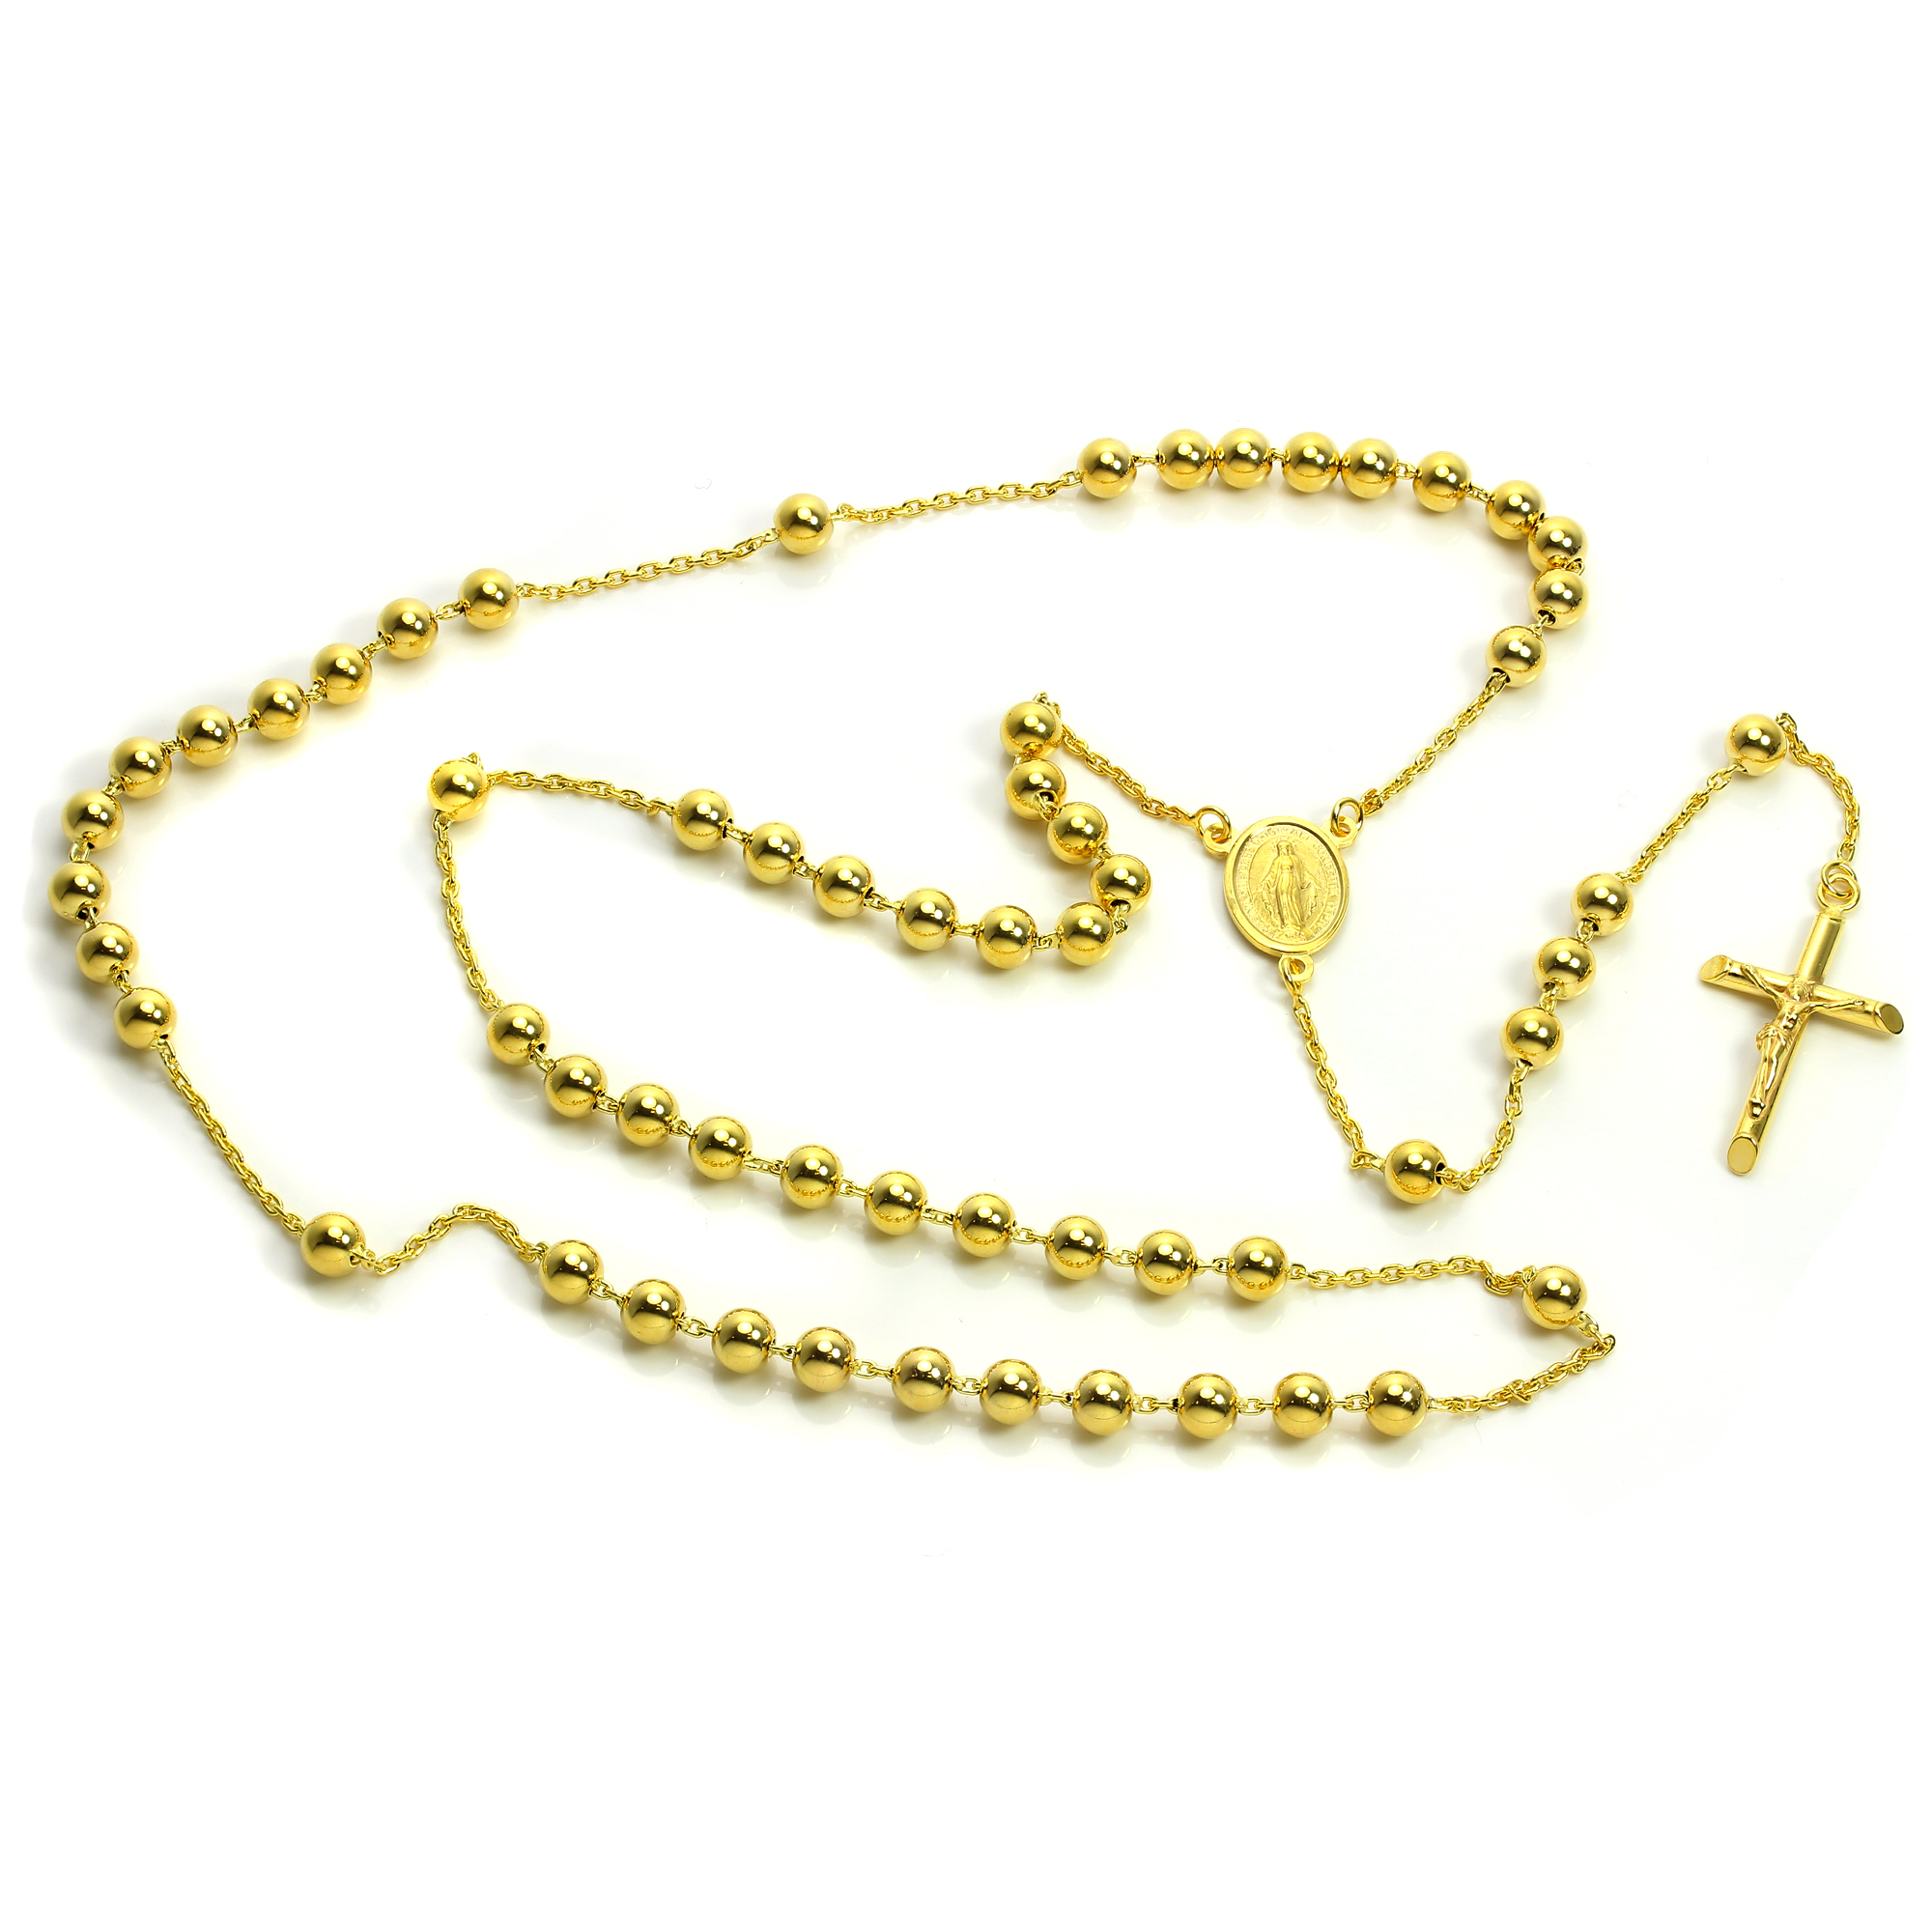 9ct Gold Heavy Rosary Bead Necklace Rosaries Prayer Beads ... 881141ad2